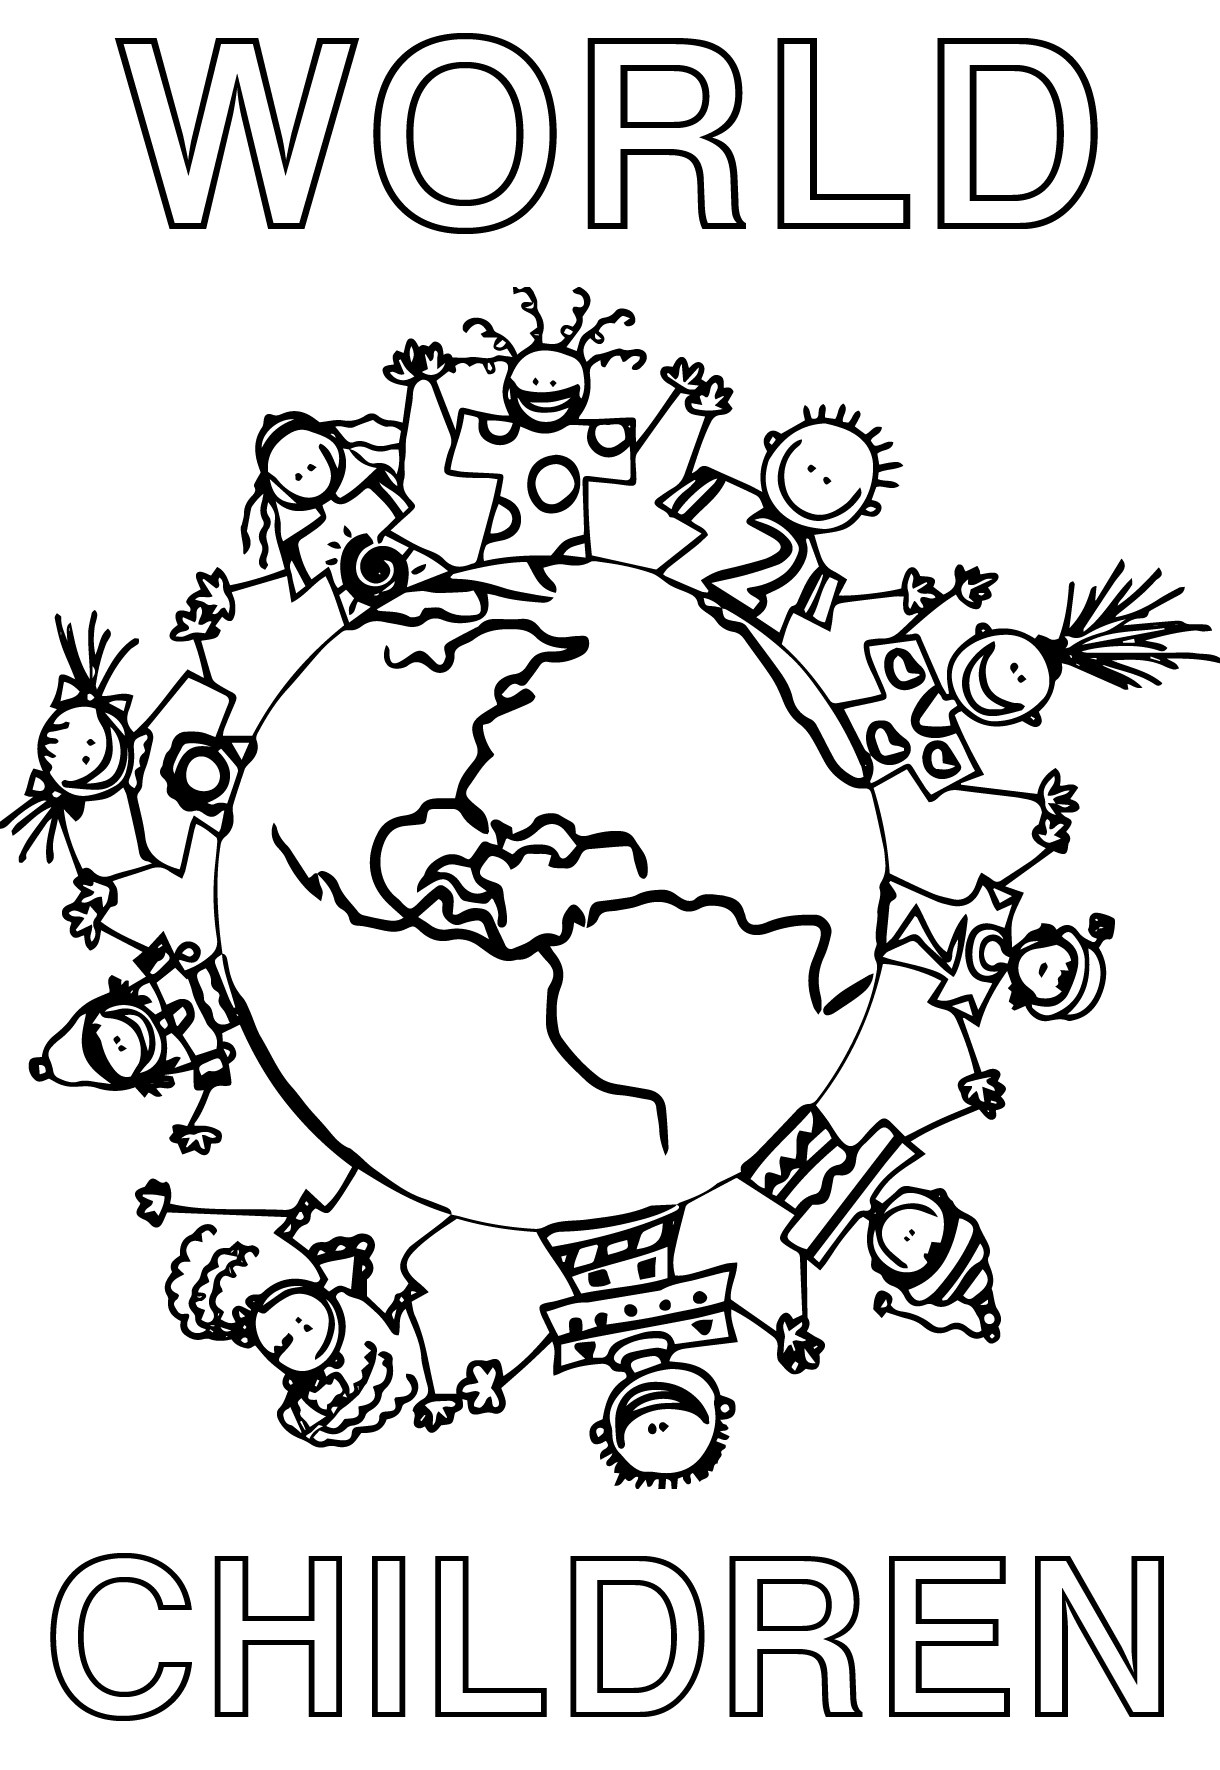 world flags coloring pages world flag coloring pages timeless miraclecom pages flags world coloring